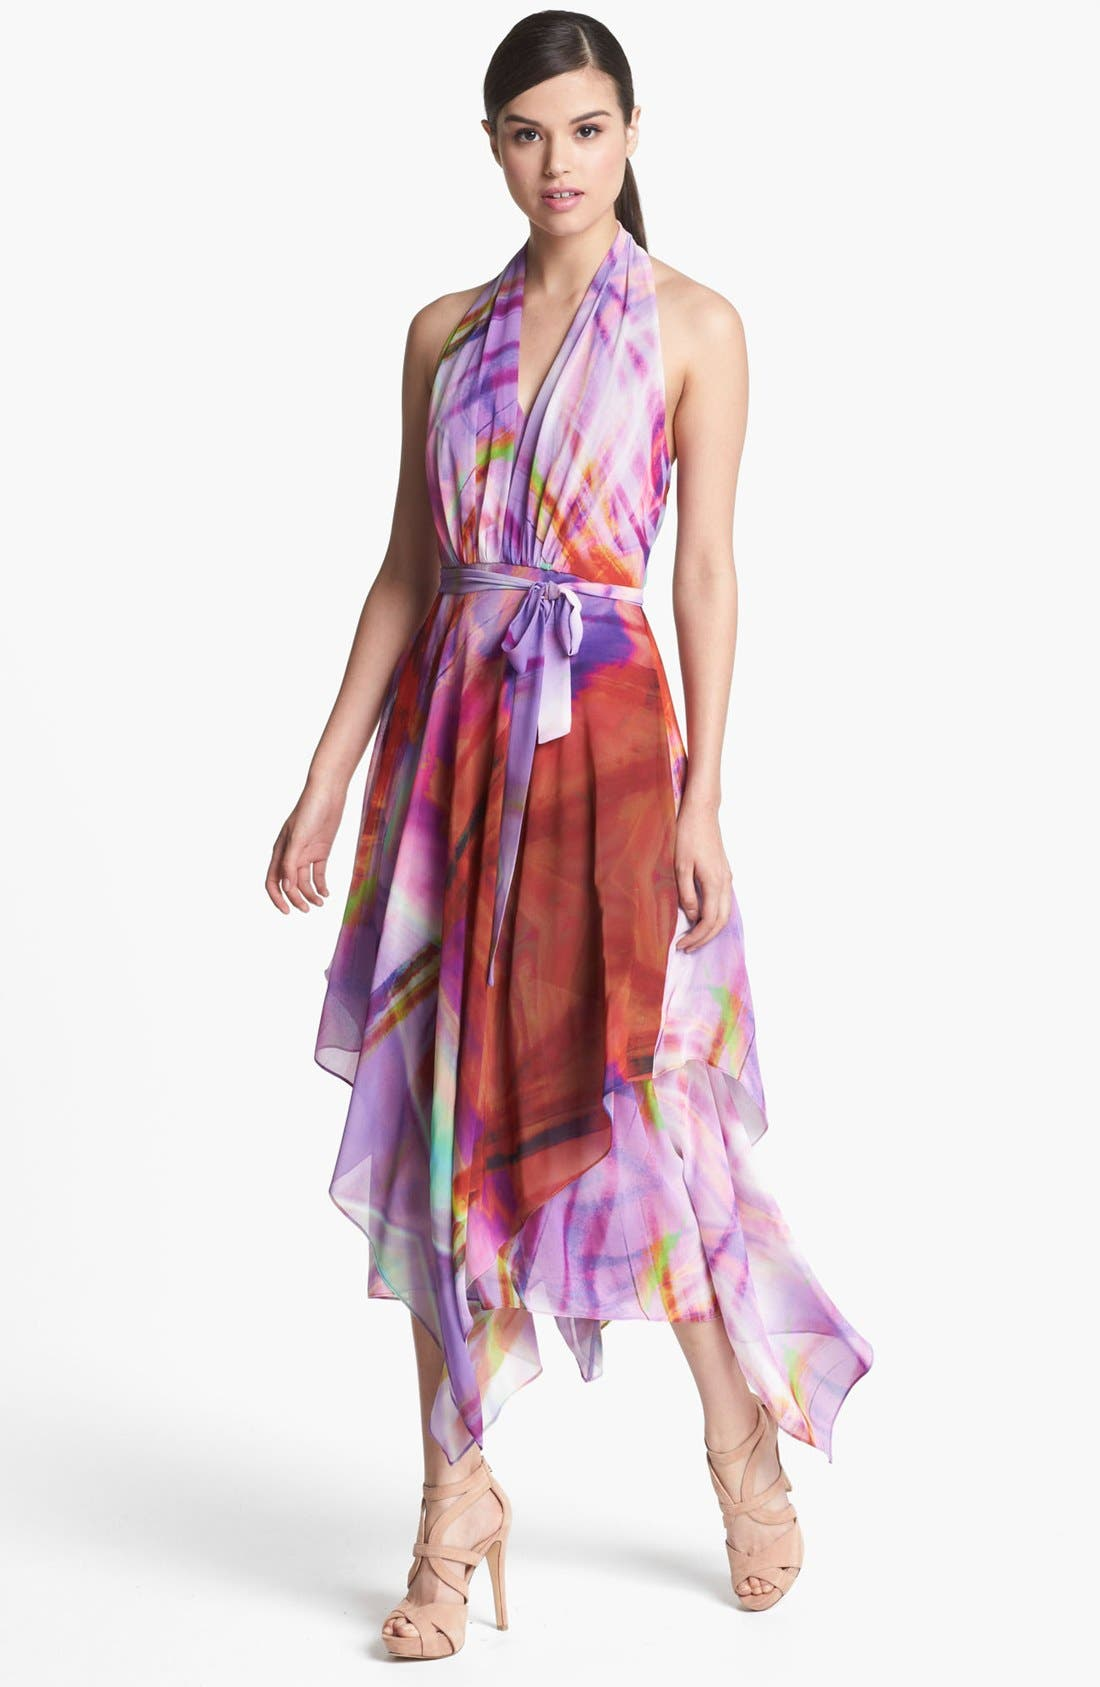 Alternate Image 1 Selected - Suzi Chin for Maggy Boutique Layered Chiffon Print Halter Dress